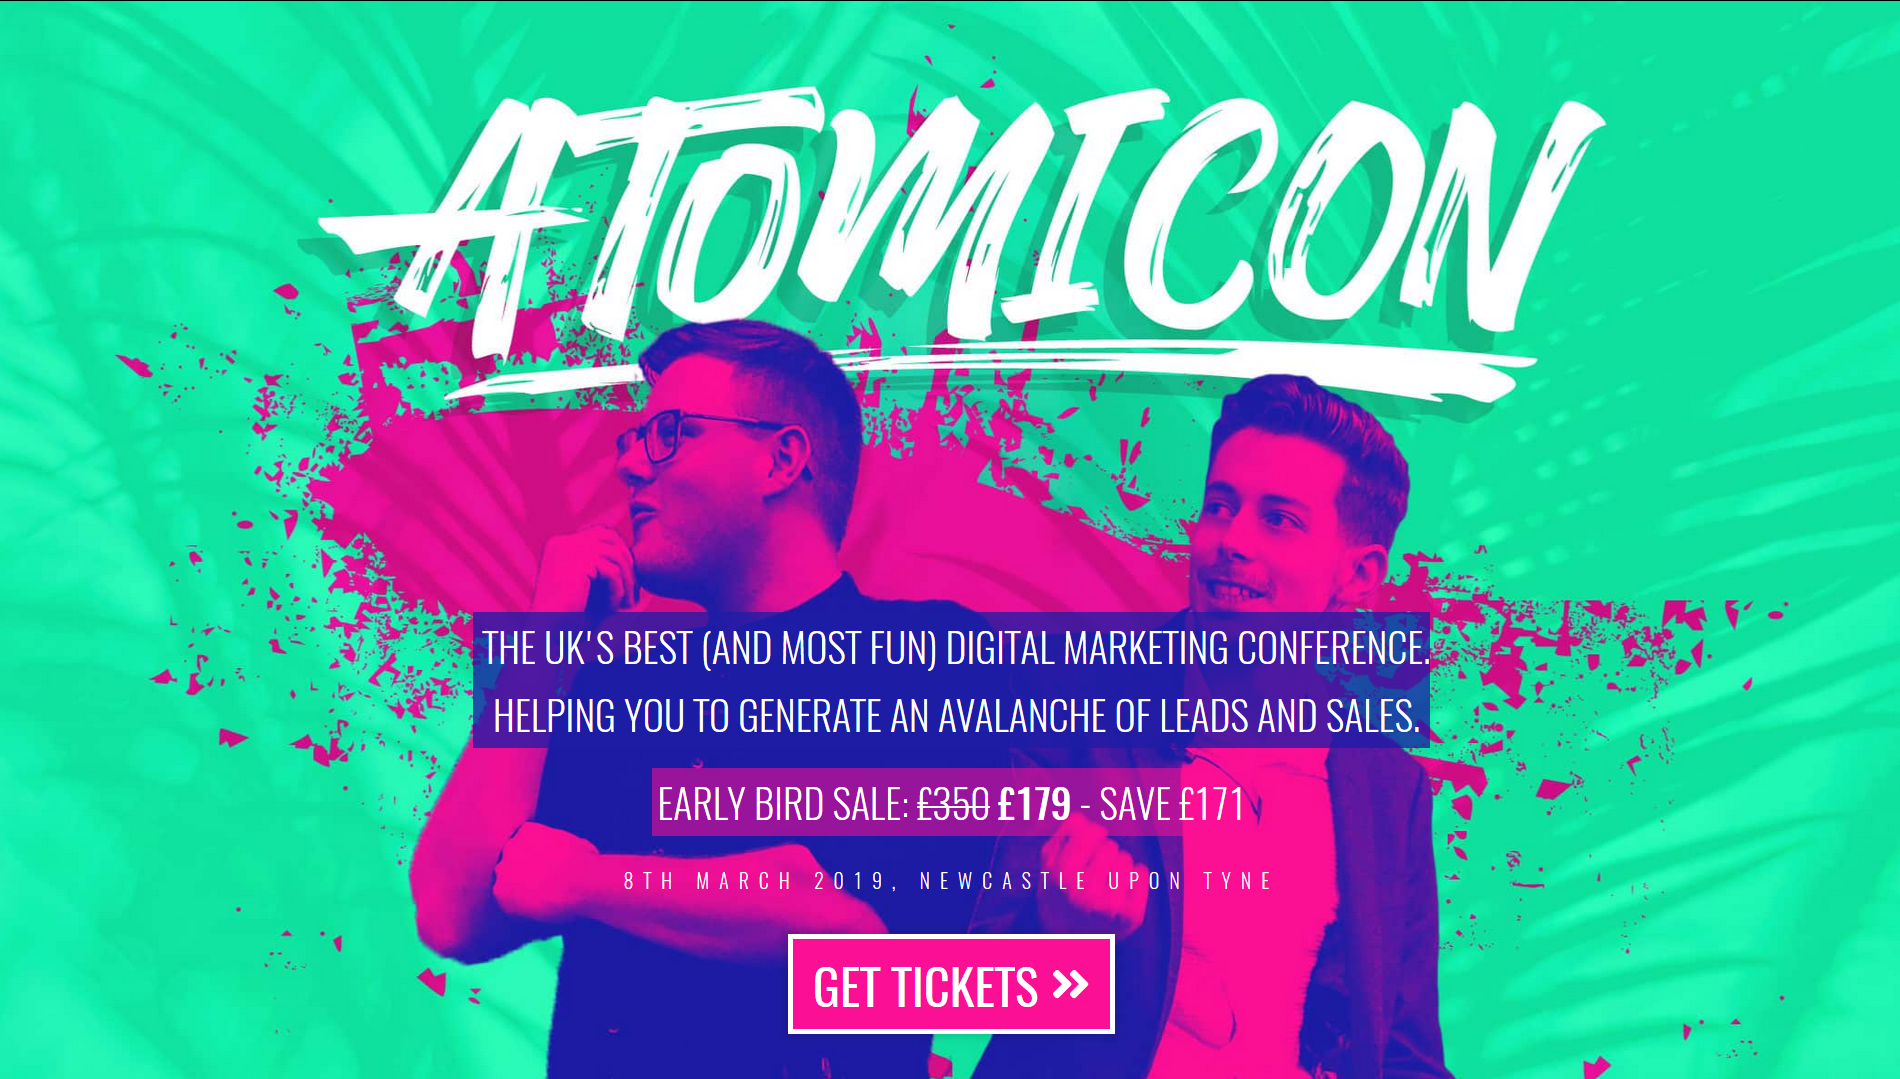 Atomicon is a playful social media conference in Newcastle, UK